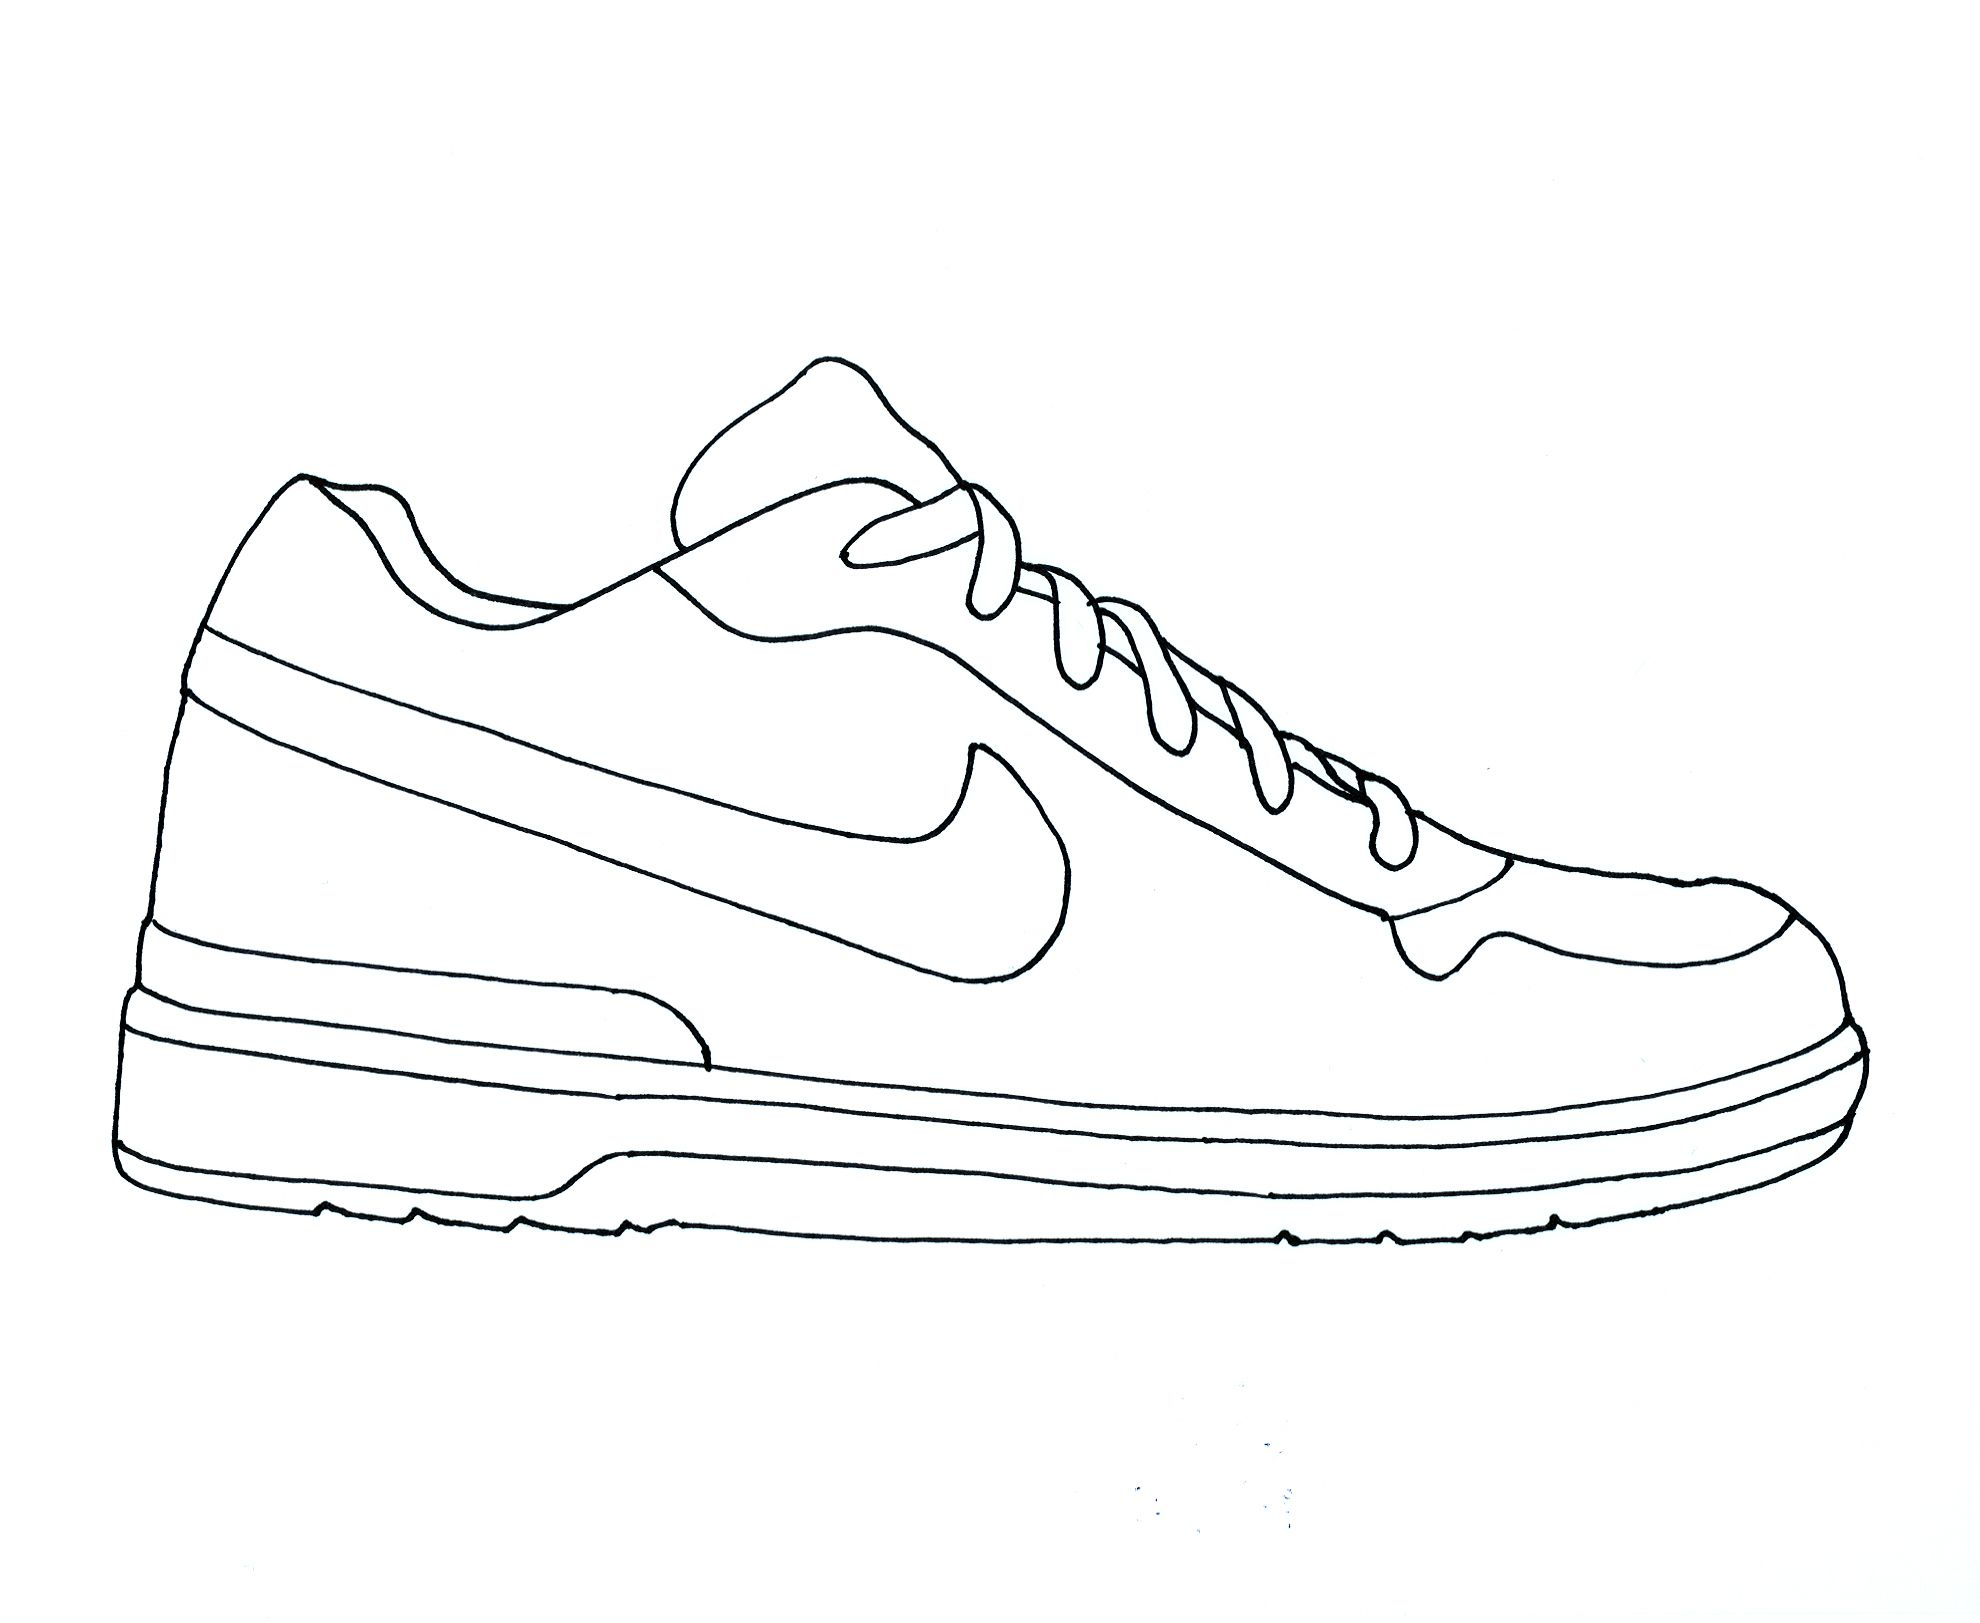 Nike shoe line drawing google search art ed pinterest shoes nike air jordan clipart shoe template pop art images fashion sketches fashion illustrations maxwellsz